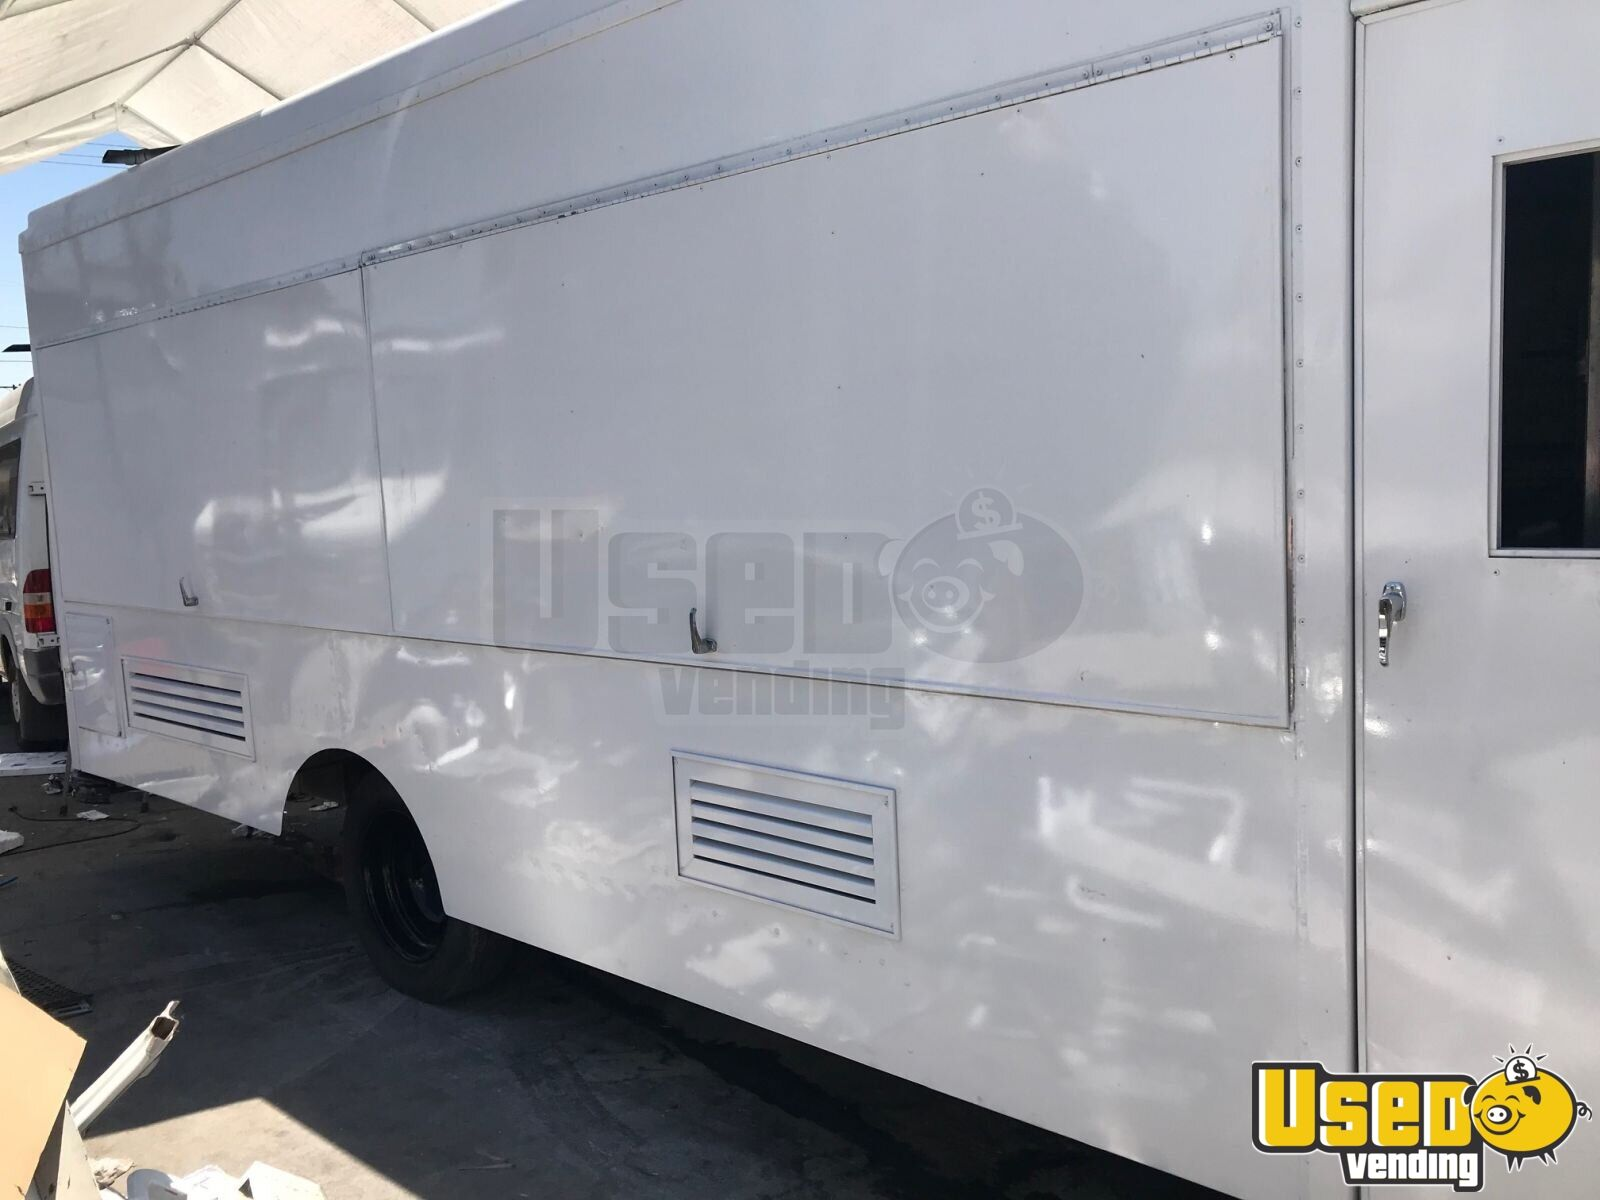 1995 Chevrolet Tx Food Truck Air Conditioning California Diesel Engine for Sale - 2